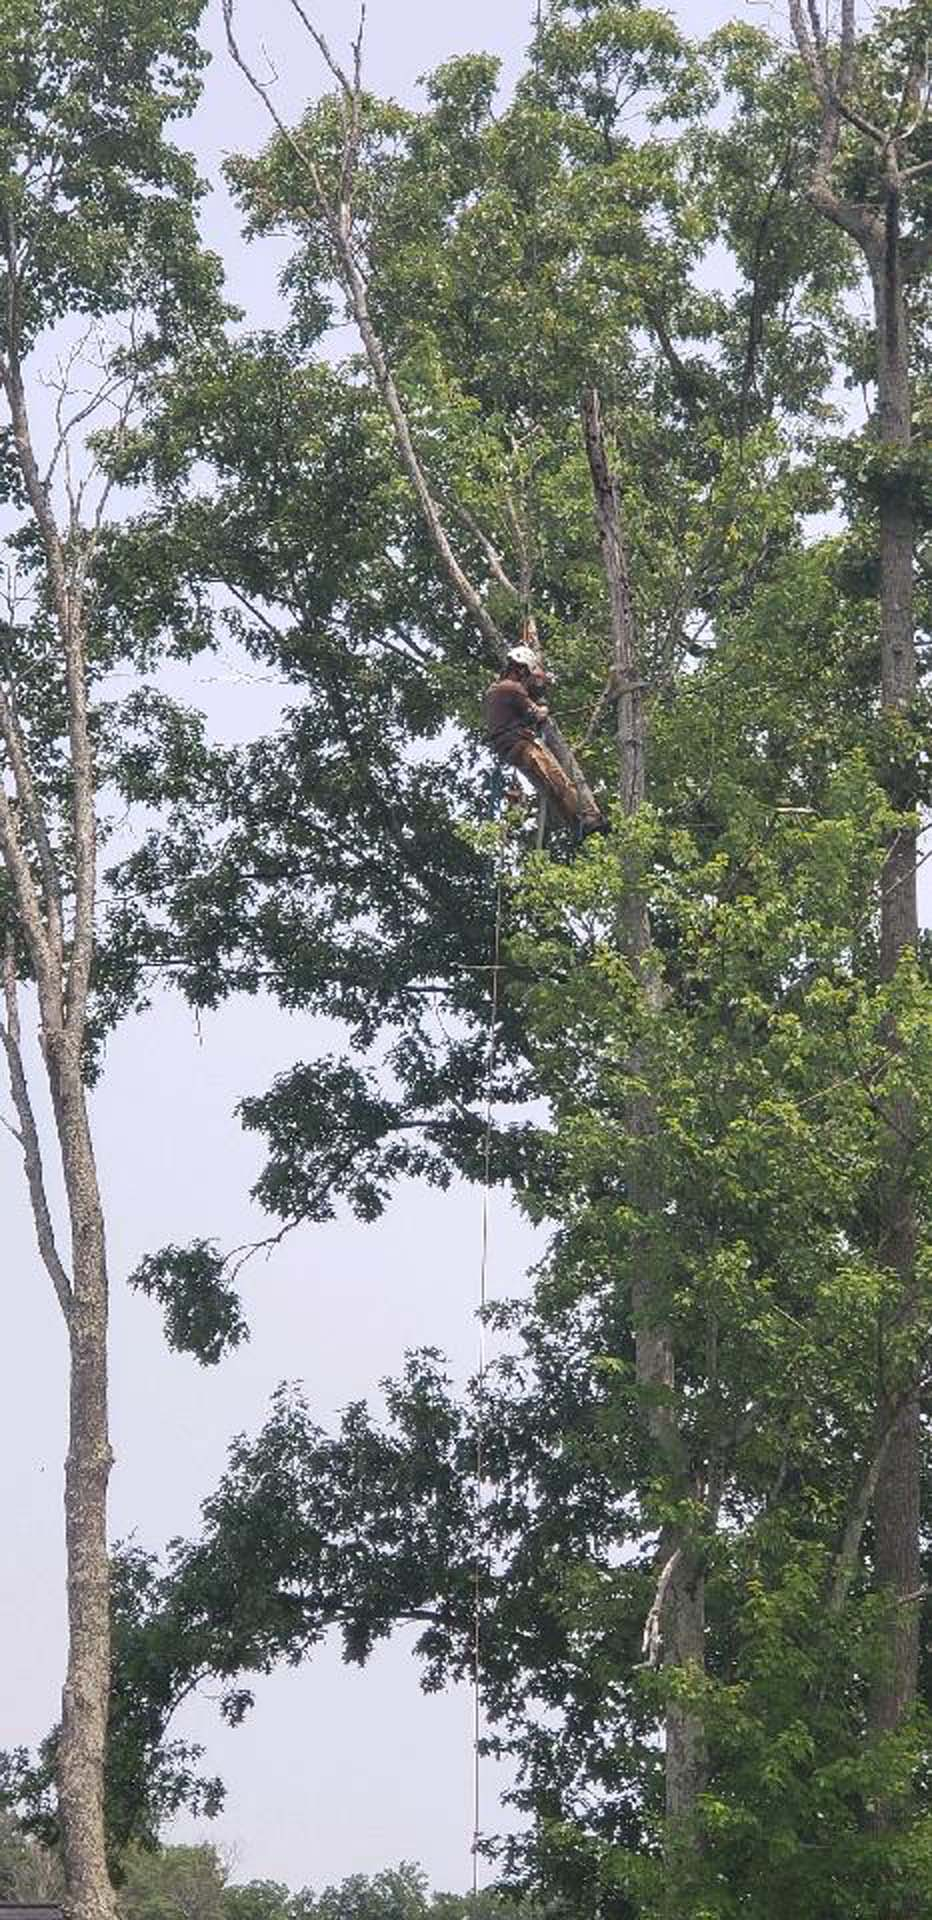 Man Trimming A Tree